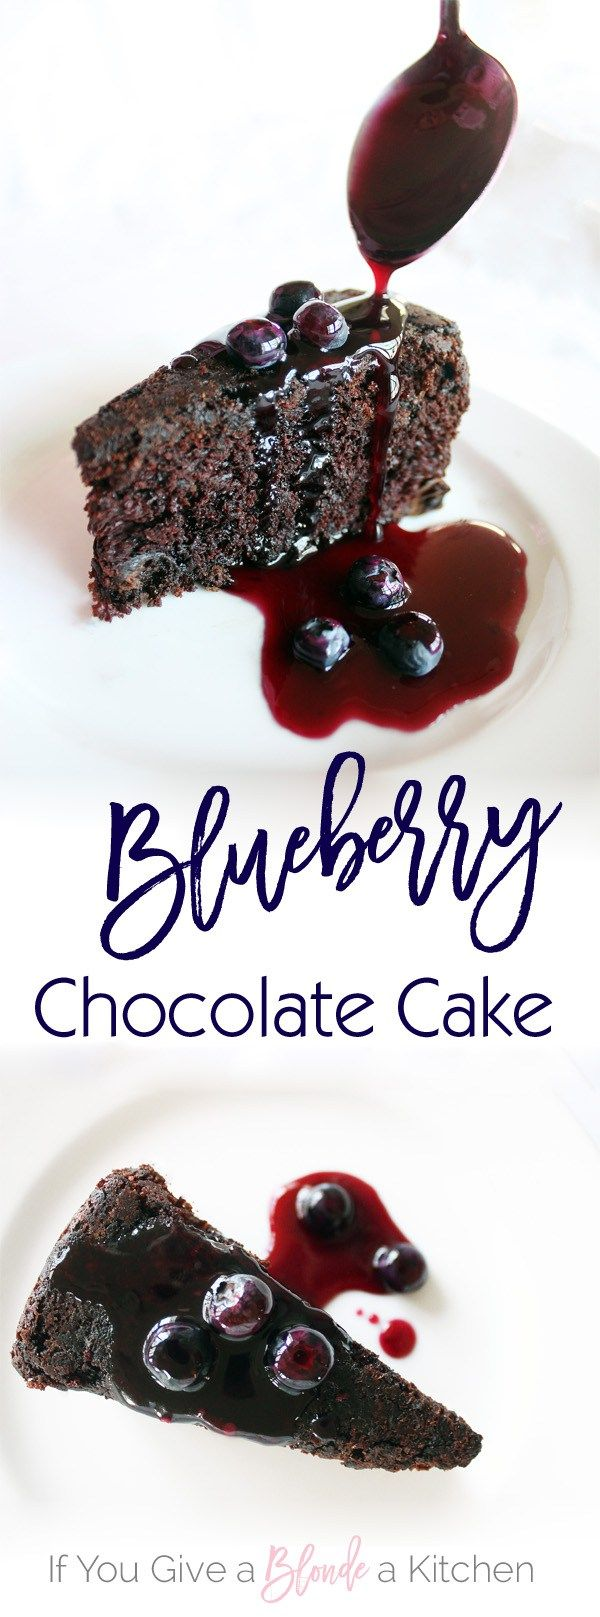 This delicious chocolate cake is sweetened with blueberries in and on the cake. The blueberry sauce is not only delicious on the cake, but on ice cream too!| Recipe by @haleydwilliams